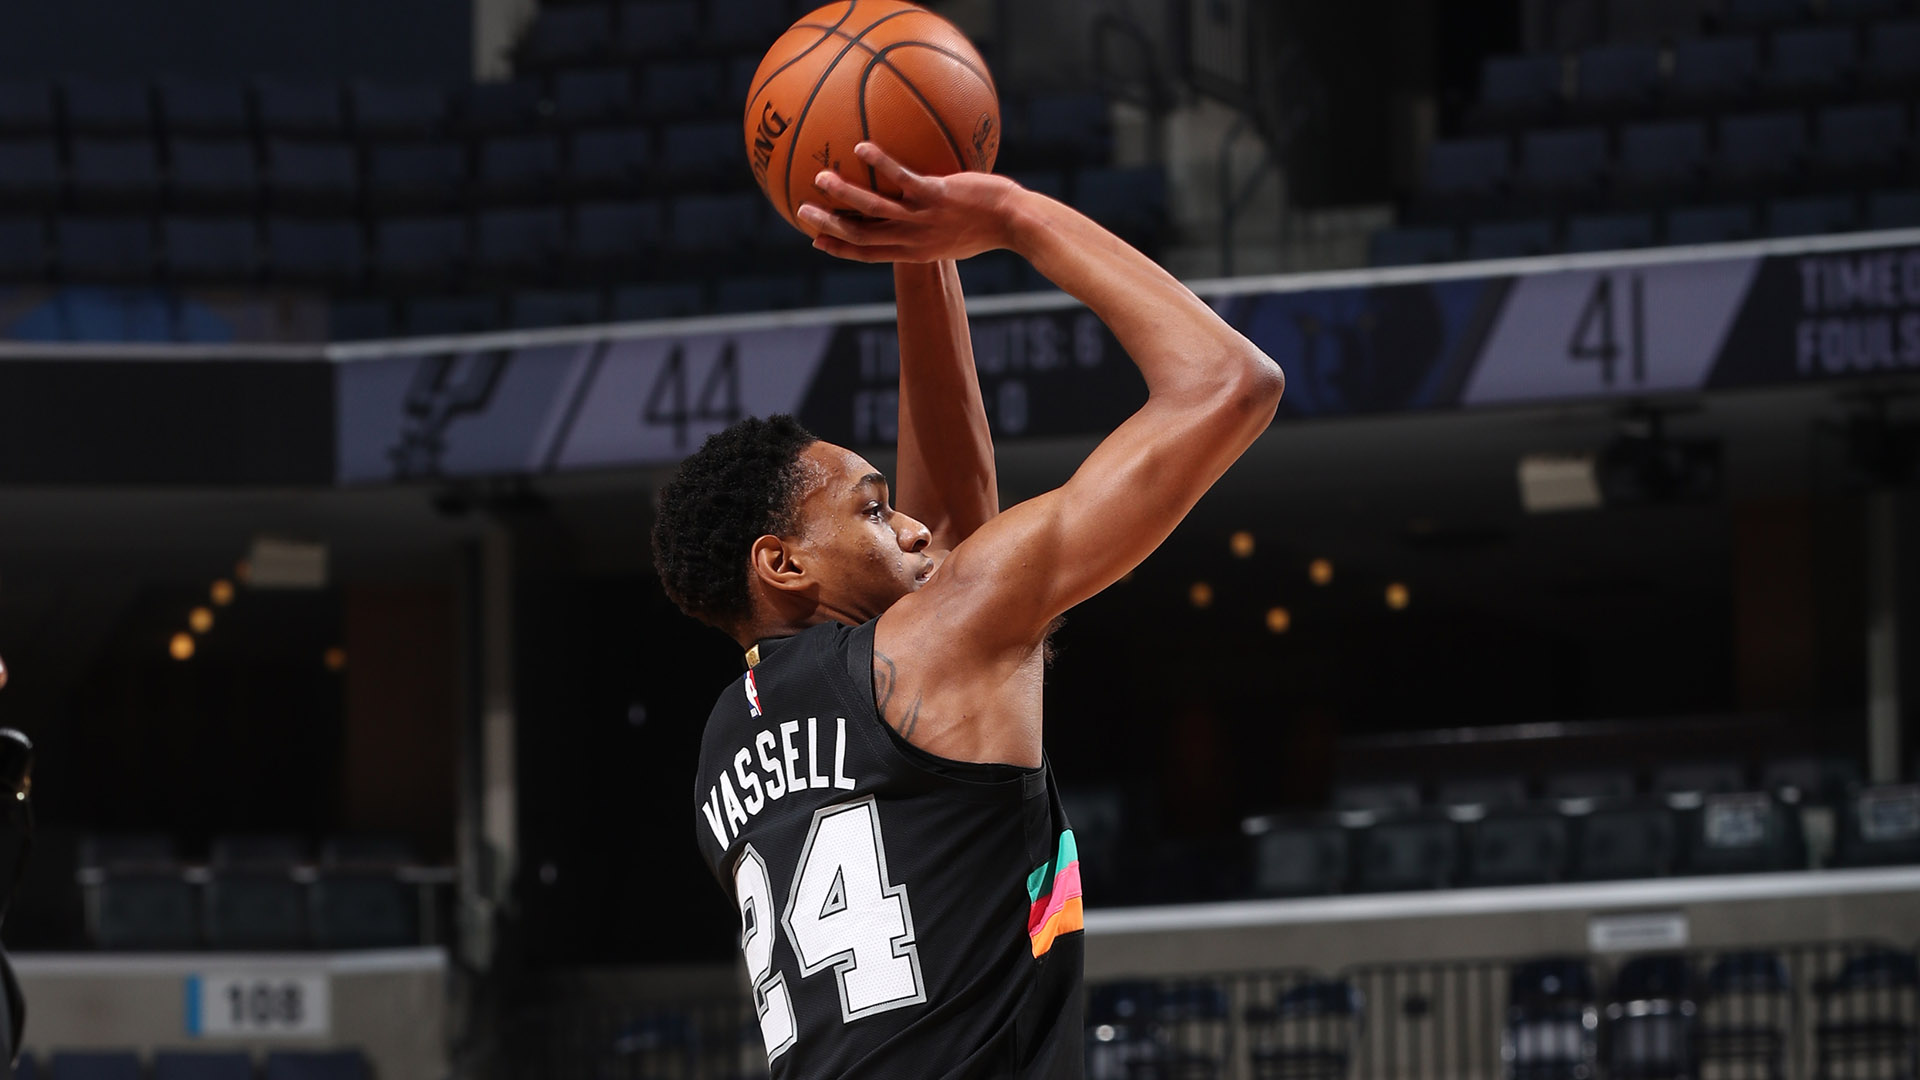 Vassell nails 3-pointer for first points in NBA